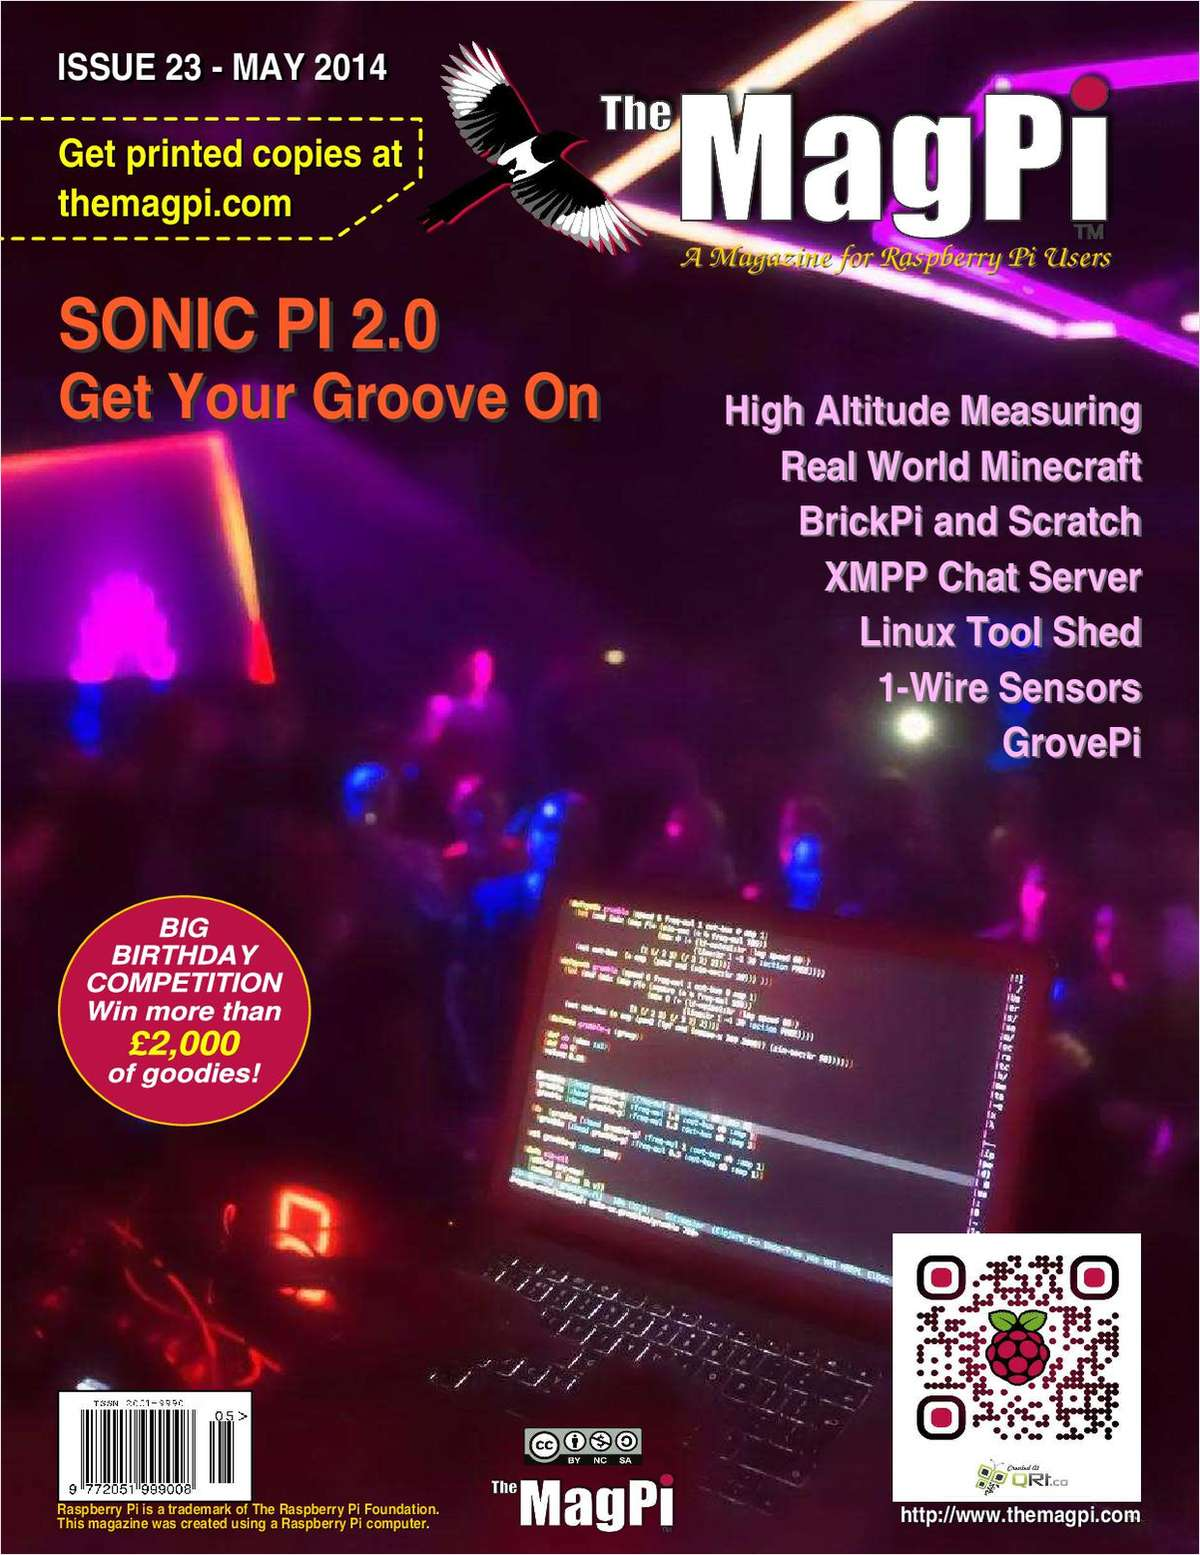 The MagPi Magazine: Sonic Pi 2.0, Get Your Groove On